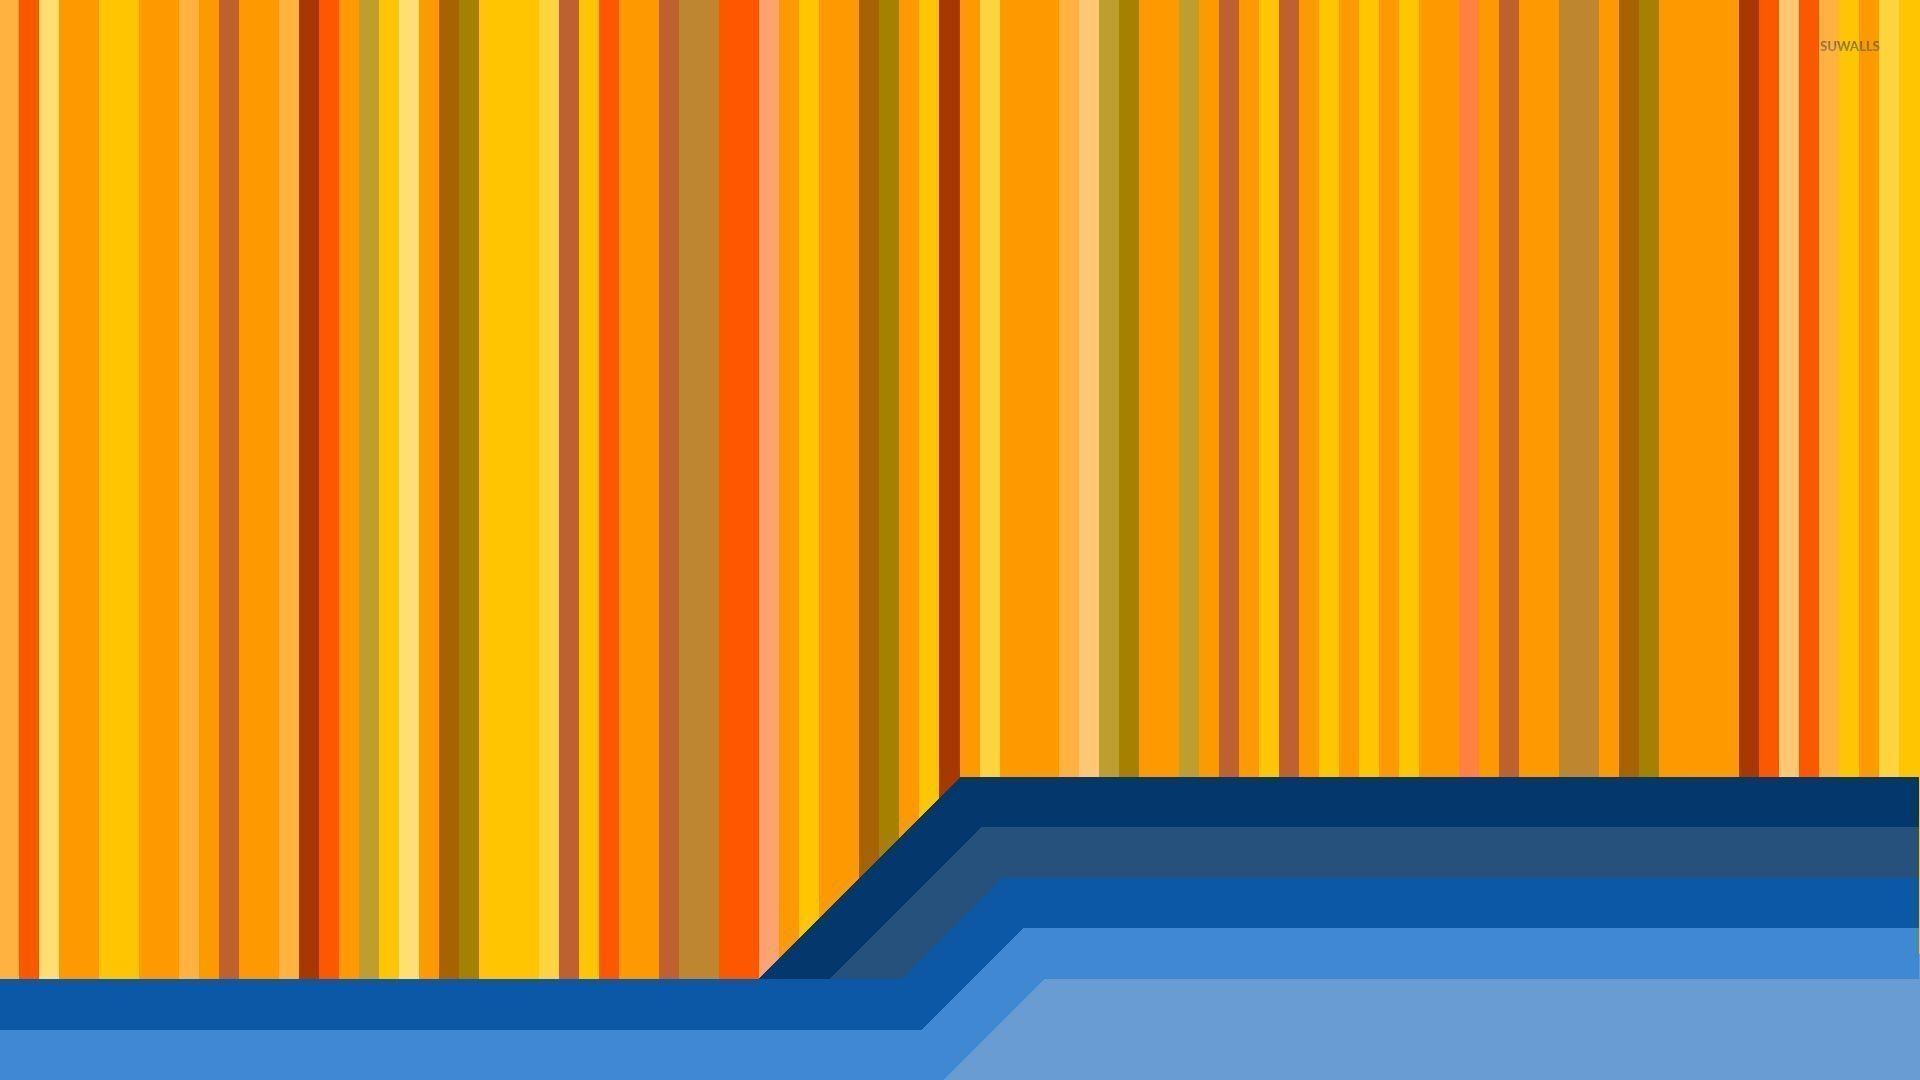 Yellow and blue stripes wallpaper